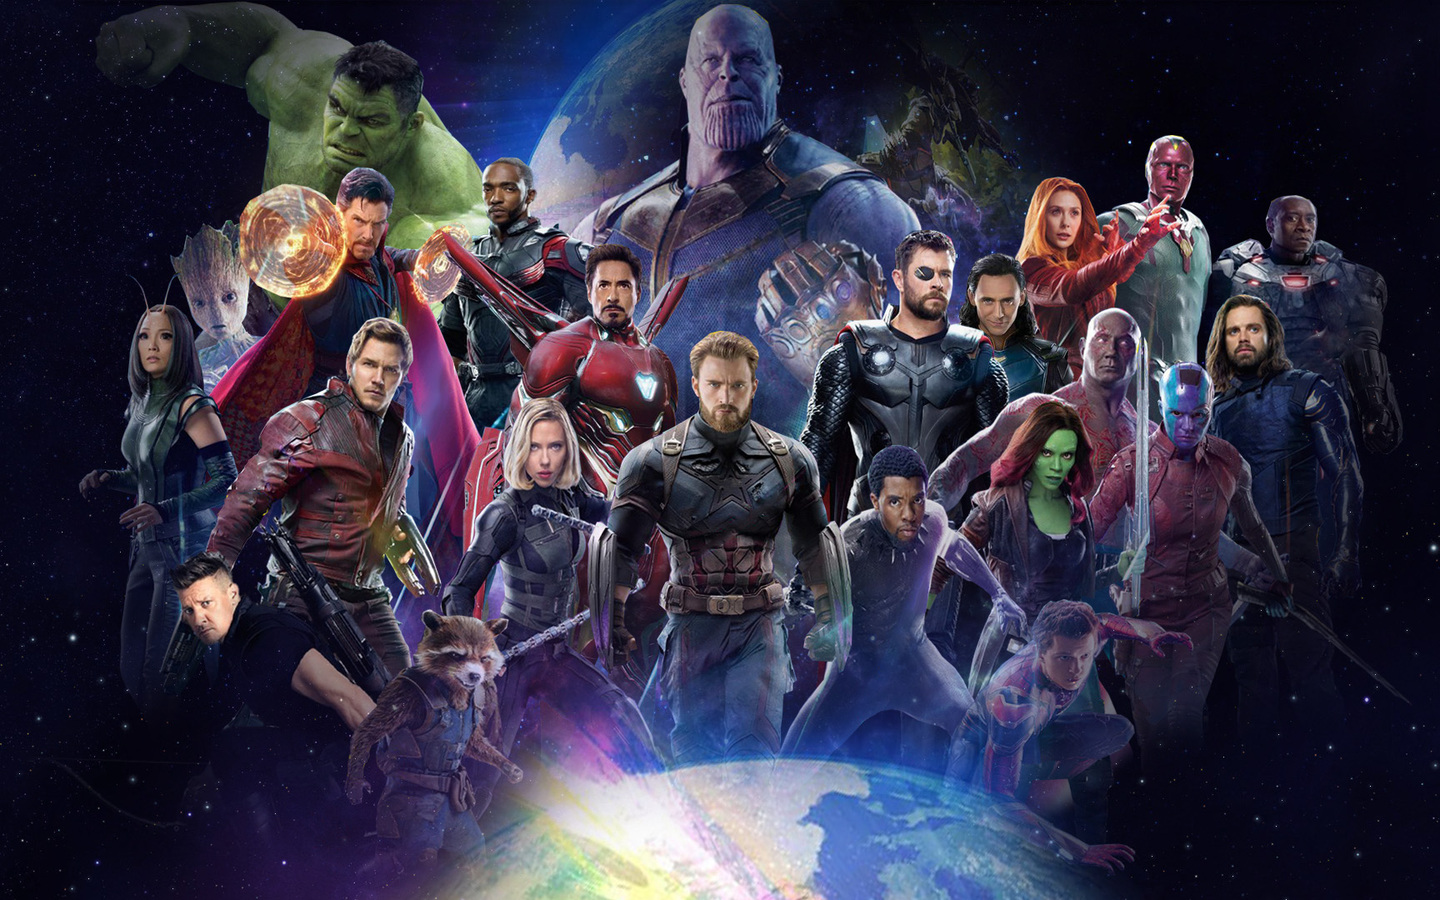 1440x900 Avengers Infinity War 2018 All Characters Poster ...